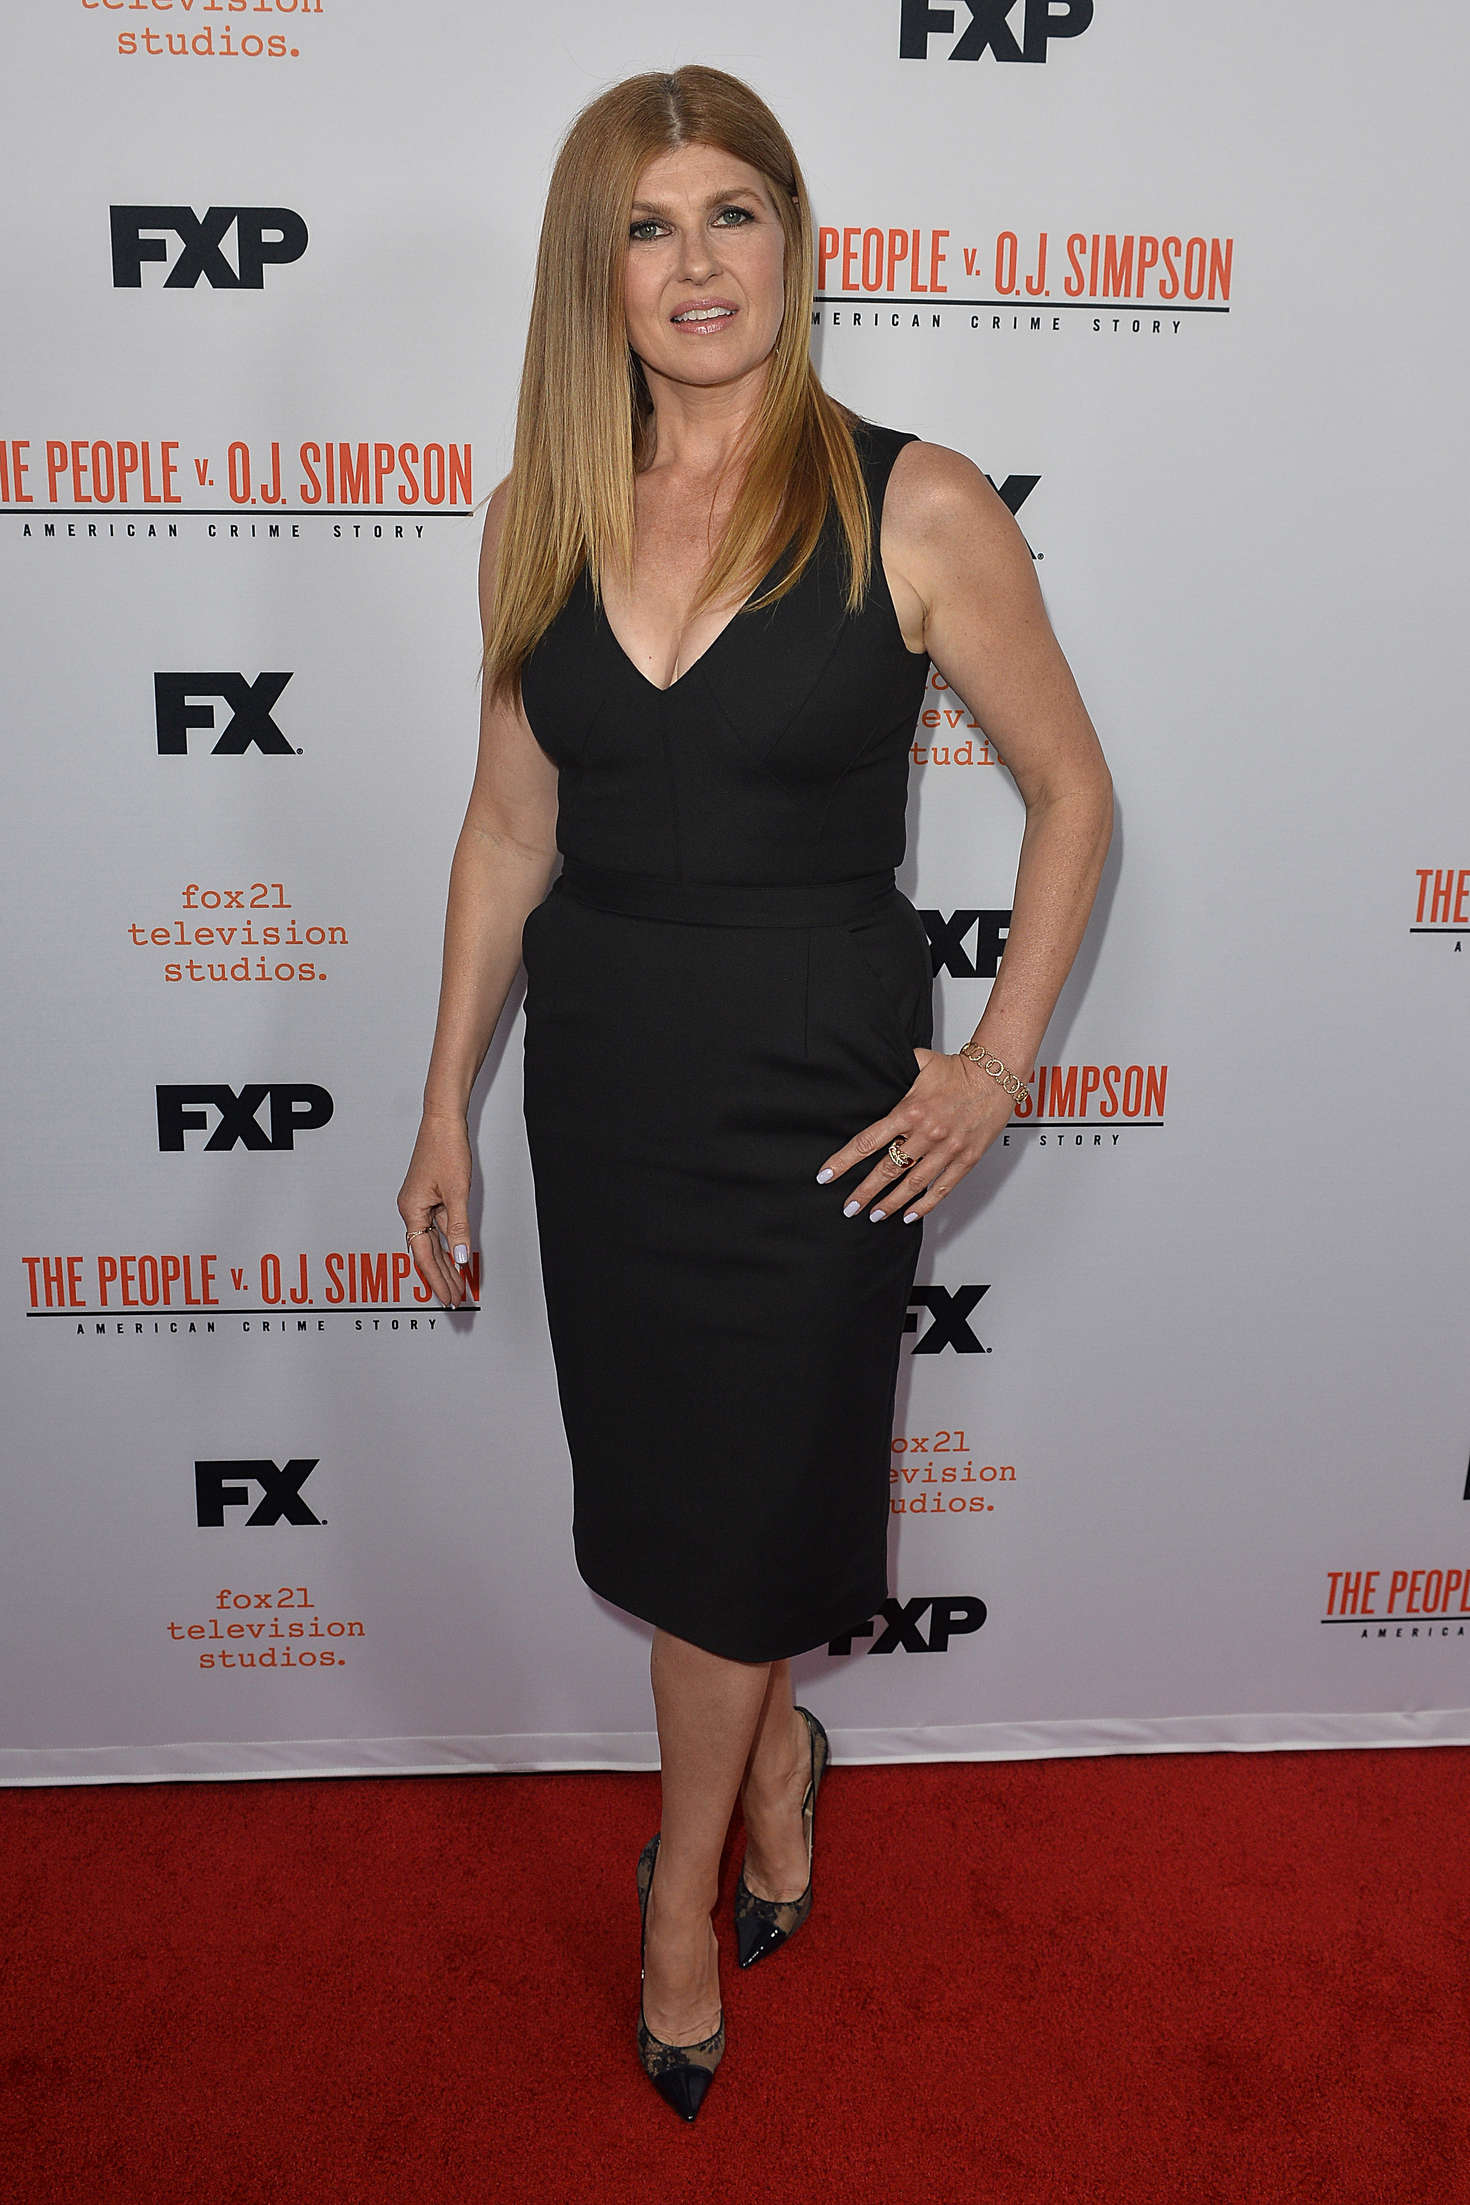 Connie Britton The People v. OJ Simpson Finale in Los Angeles